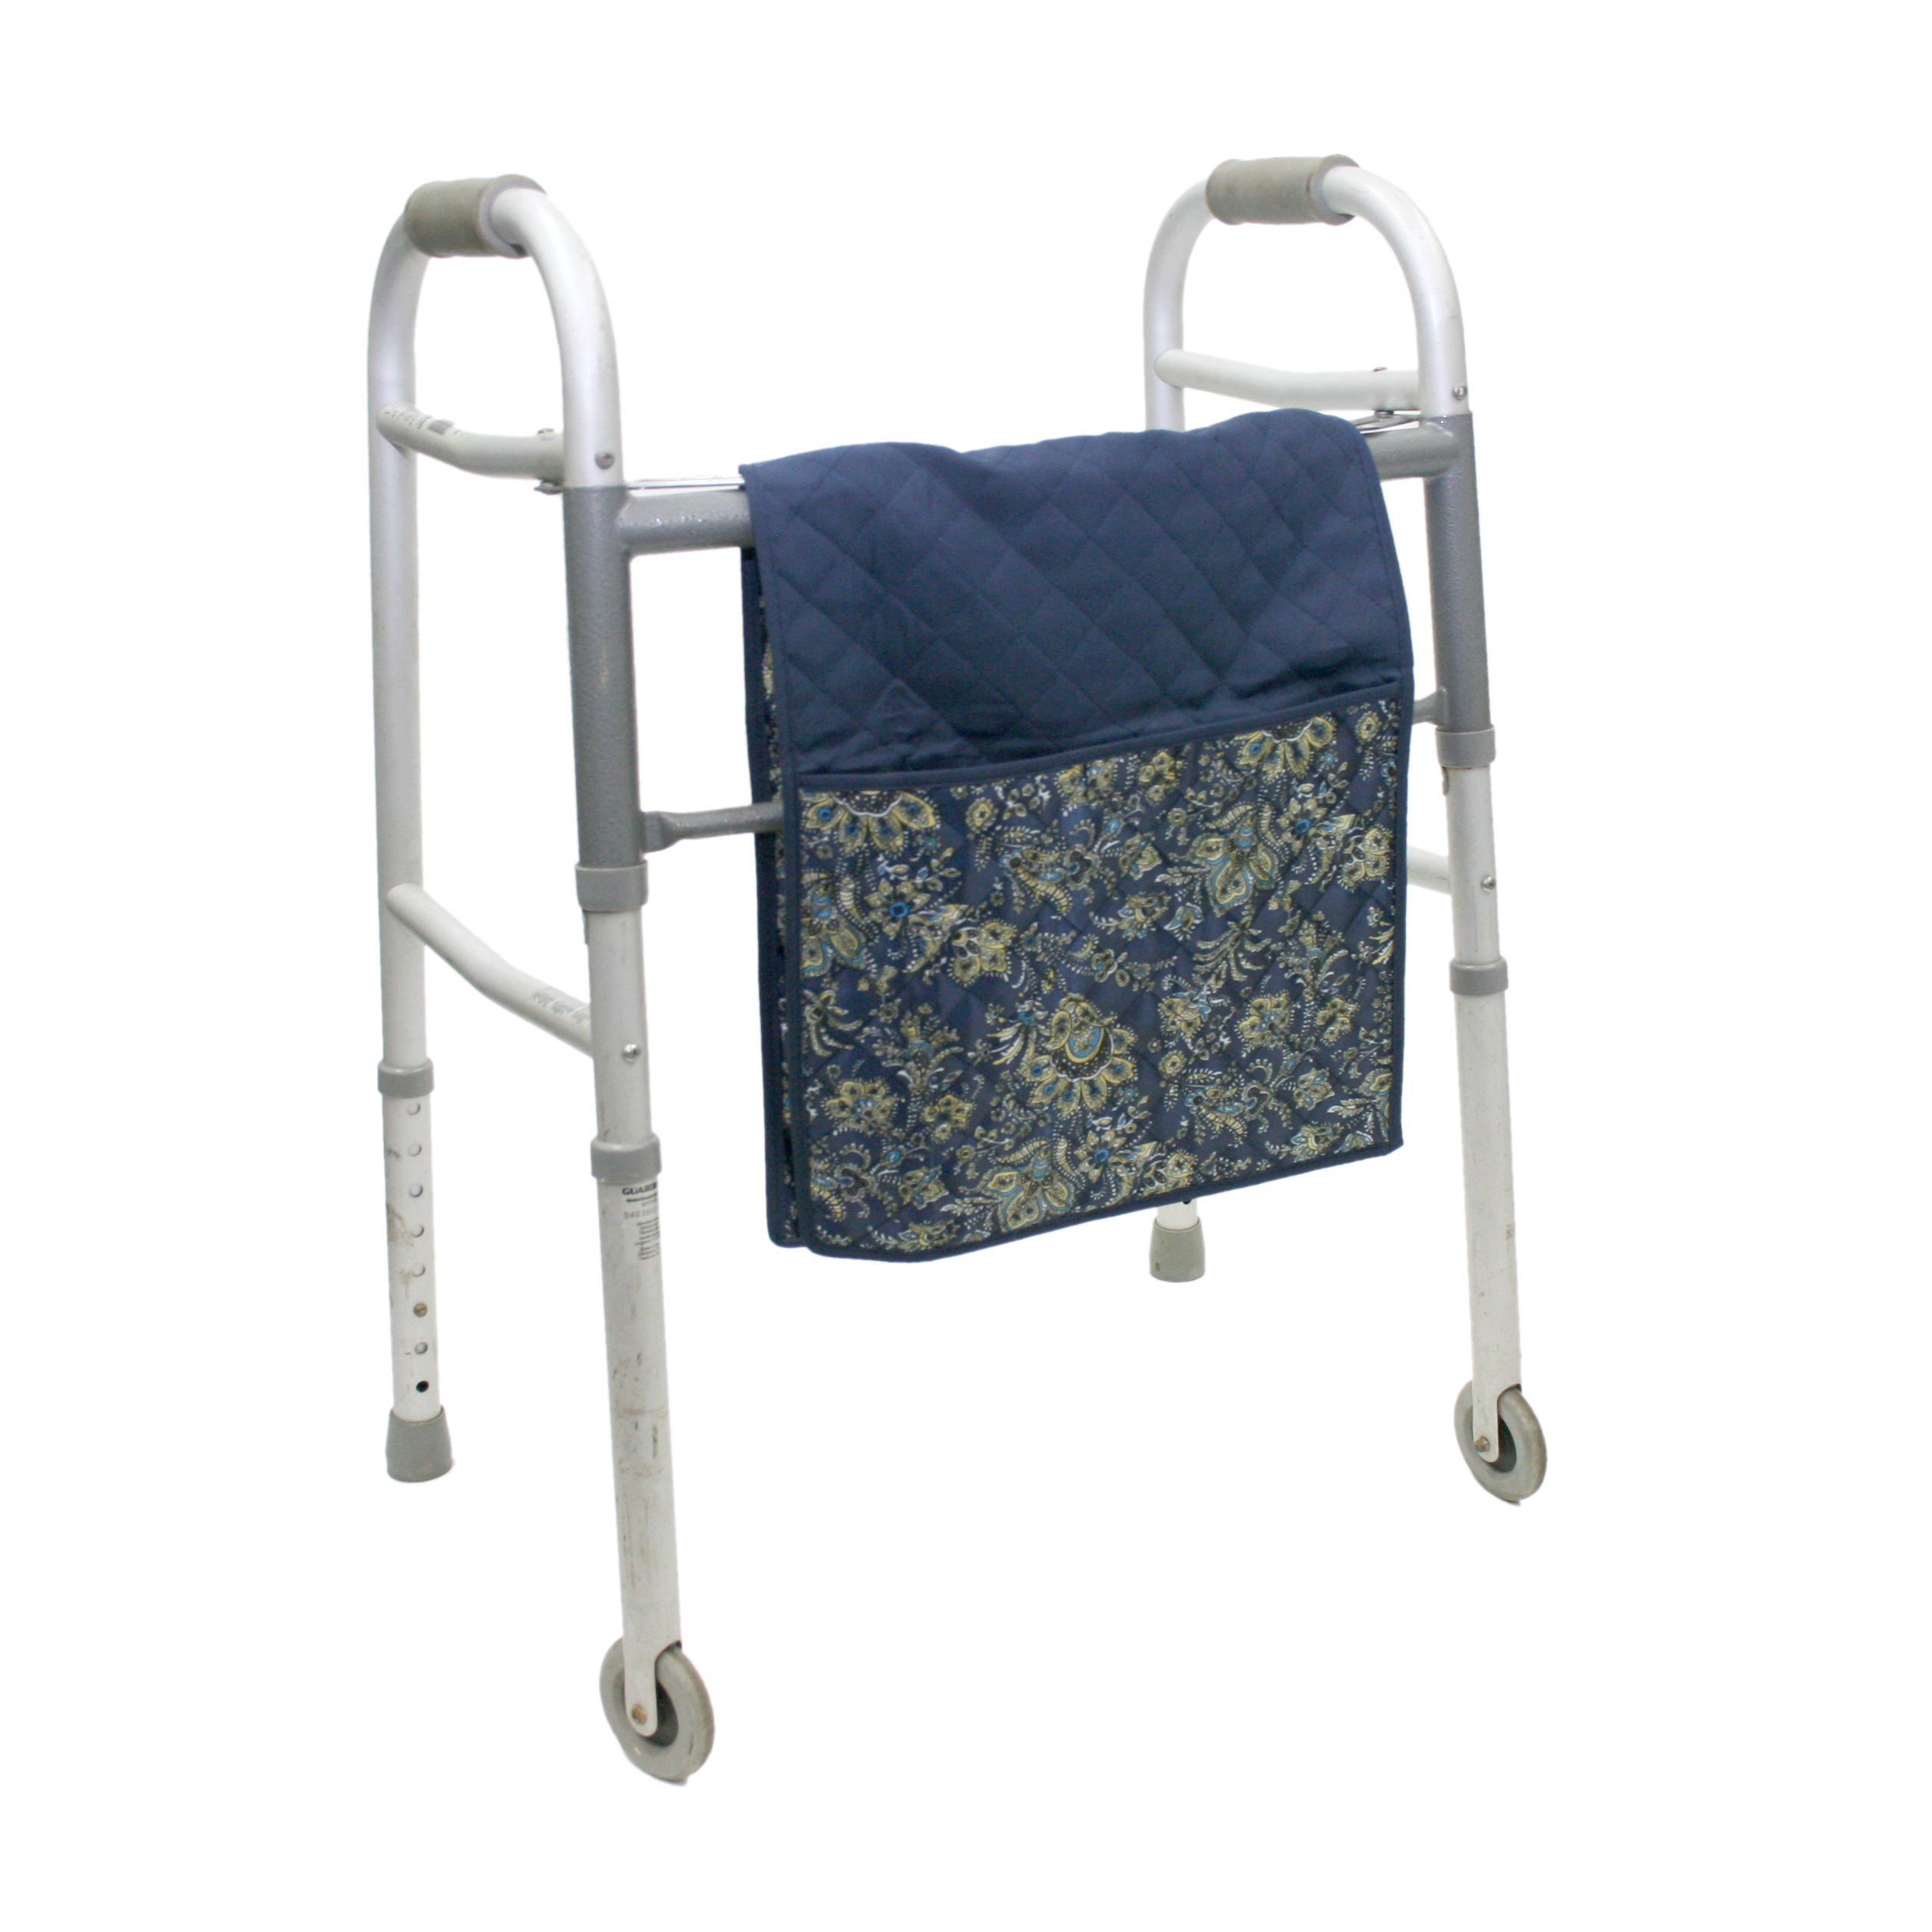 LAMINET - Mobility & Daily Living AIDS (Walker Organizer, Paisley)